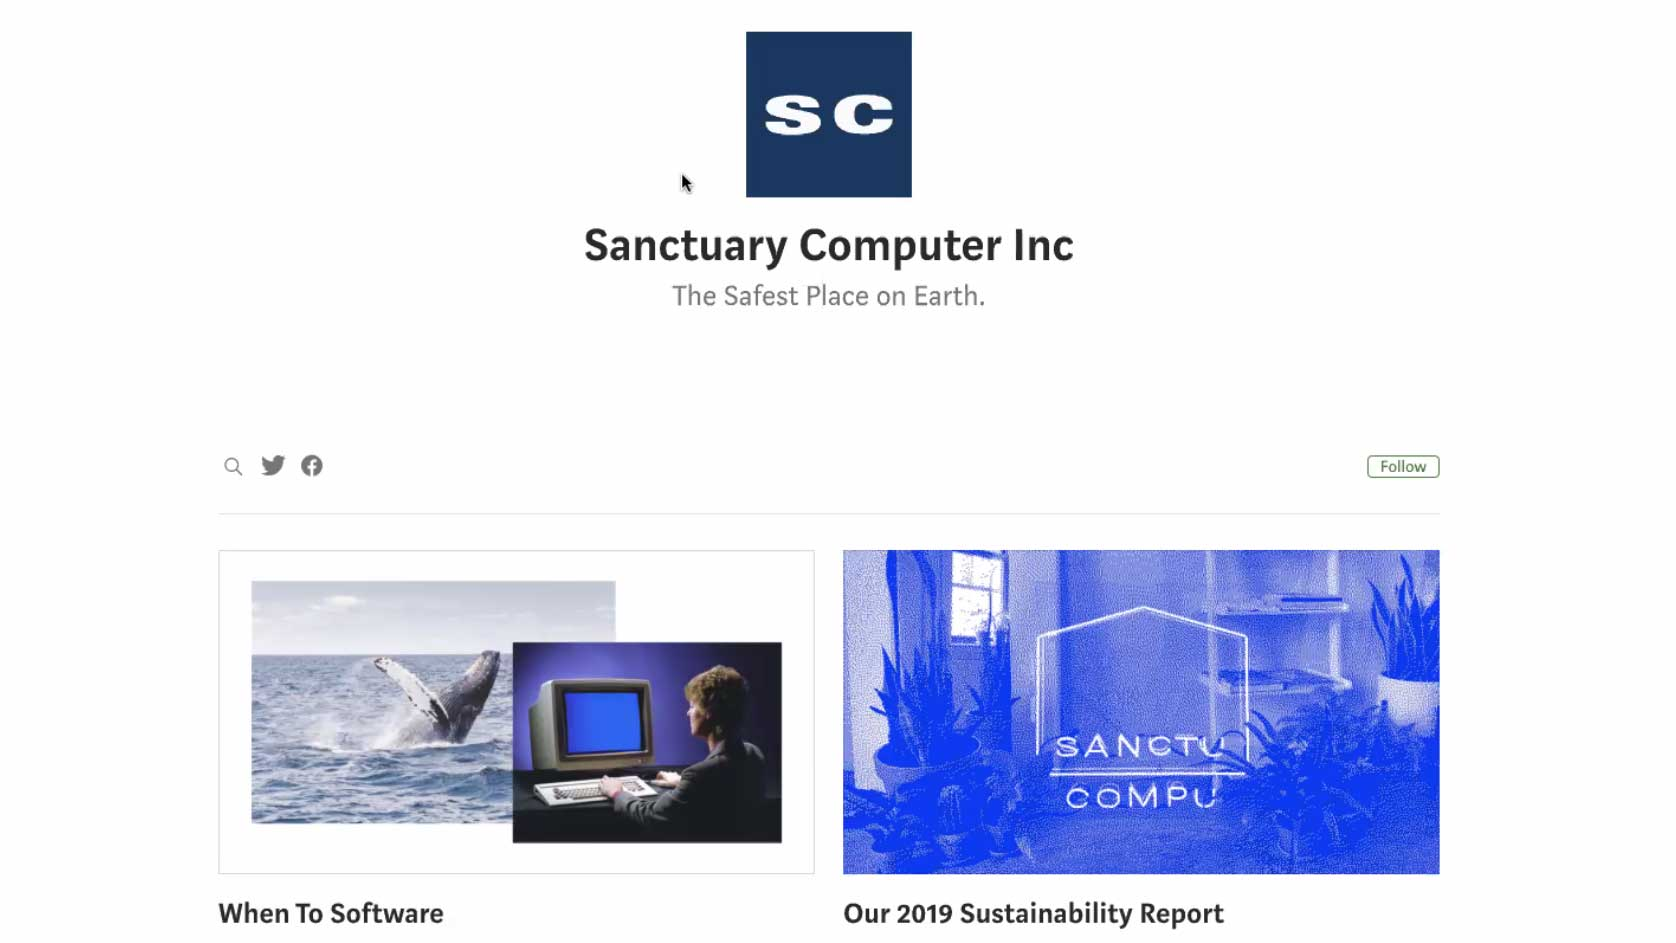 images from sanctuary computer website a whale in the sea a person using a computerseen from behind and the sanctuary computer logo overlayed on a blue duotone photo of a room with many plants